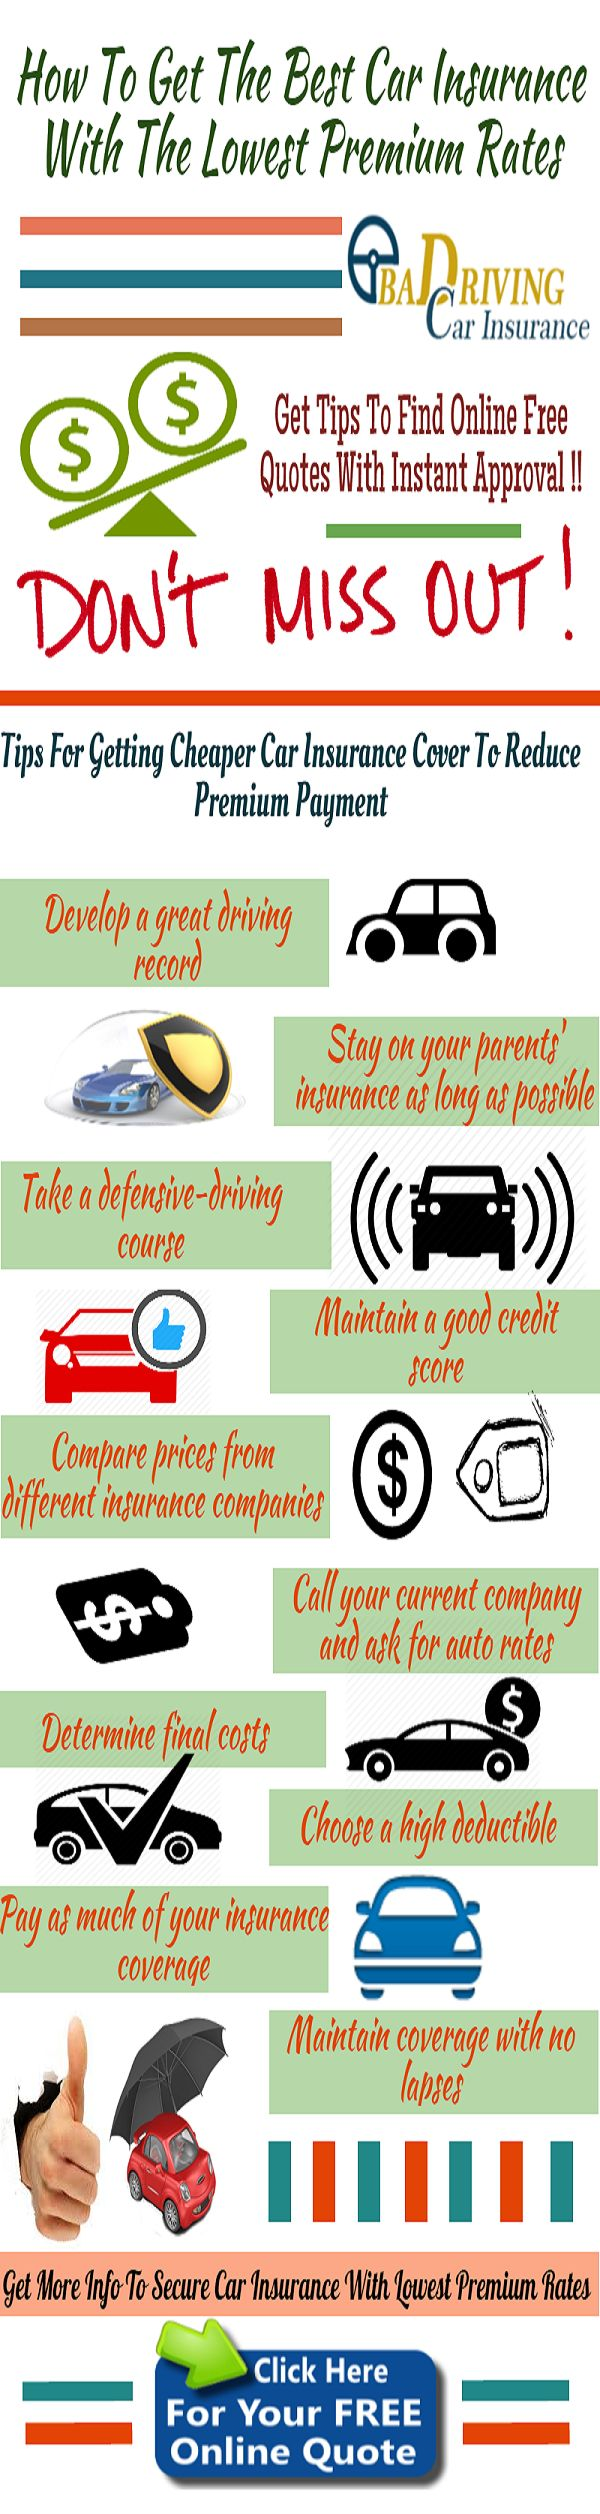 Car Insurance Free Quote Unique 9 Best Carauto Insurance Infographic Images On Pinterest